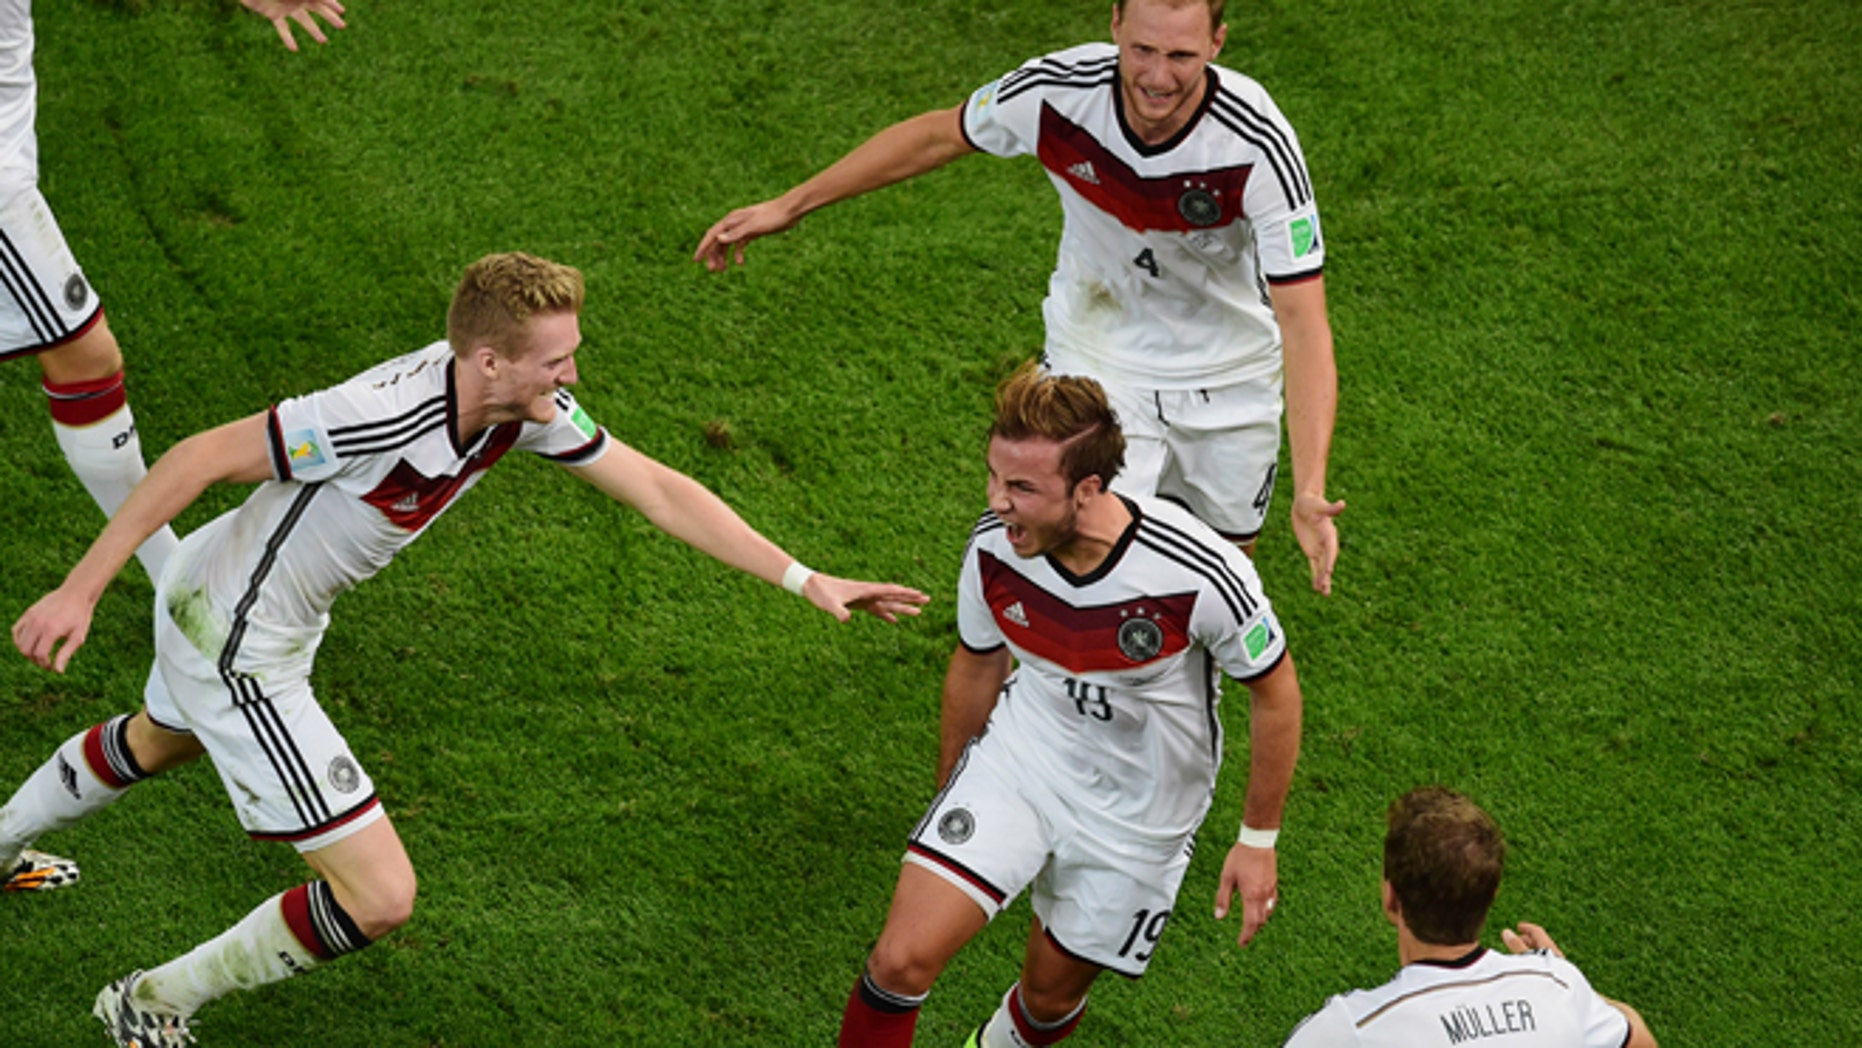 July 13, 2014: Germany's Mario Goetze, center, celebrates scoring his side's first goal during the World Cup final soccer match between Germany and Argentina at the Maracana Stadium in Rio de Janeiro, Brazil/